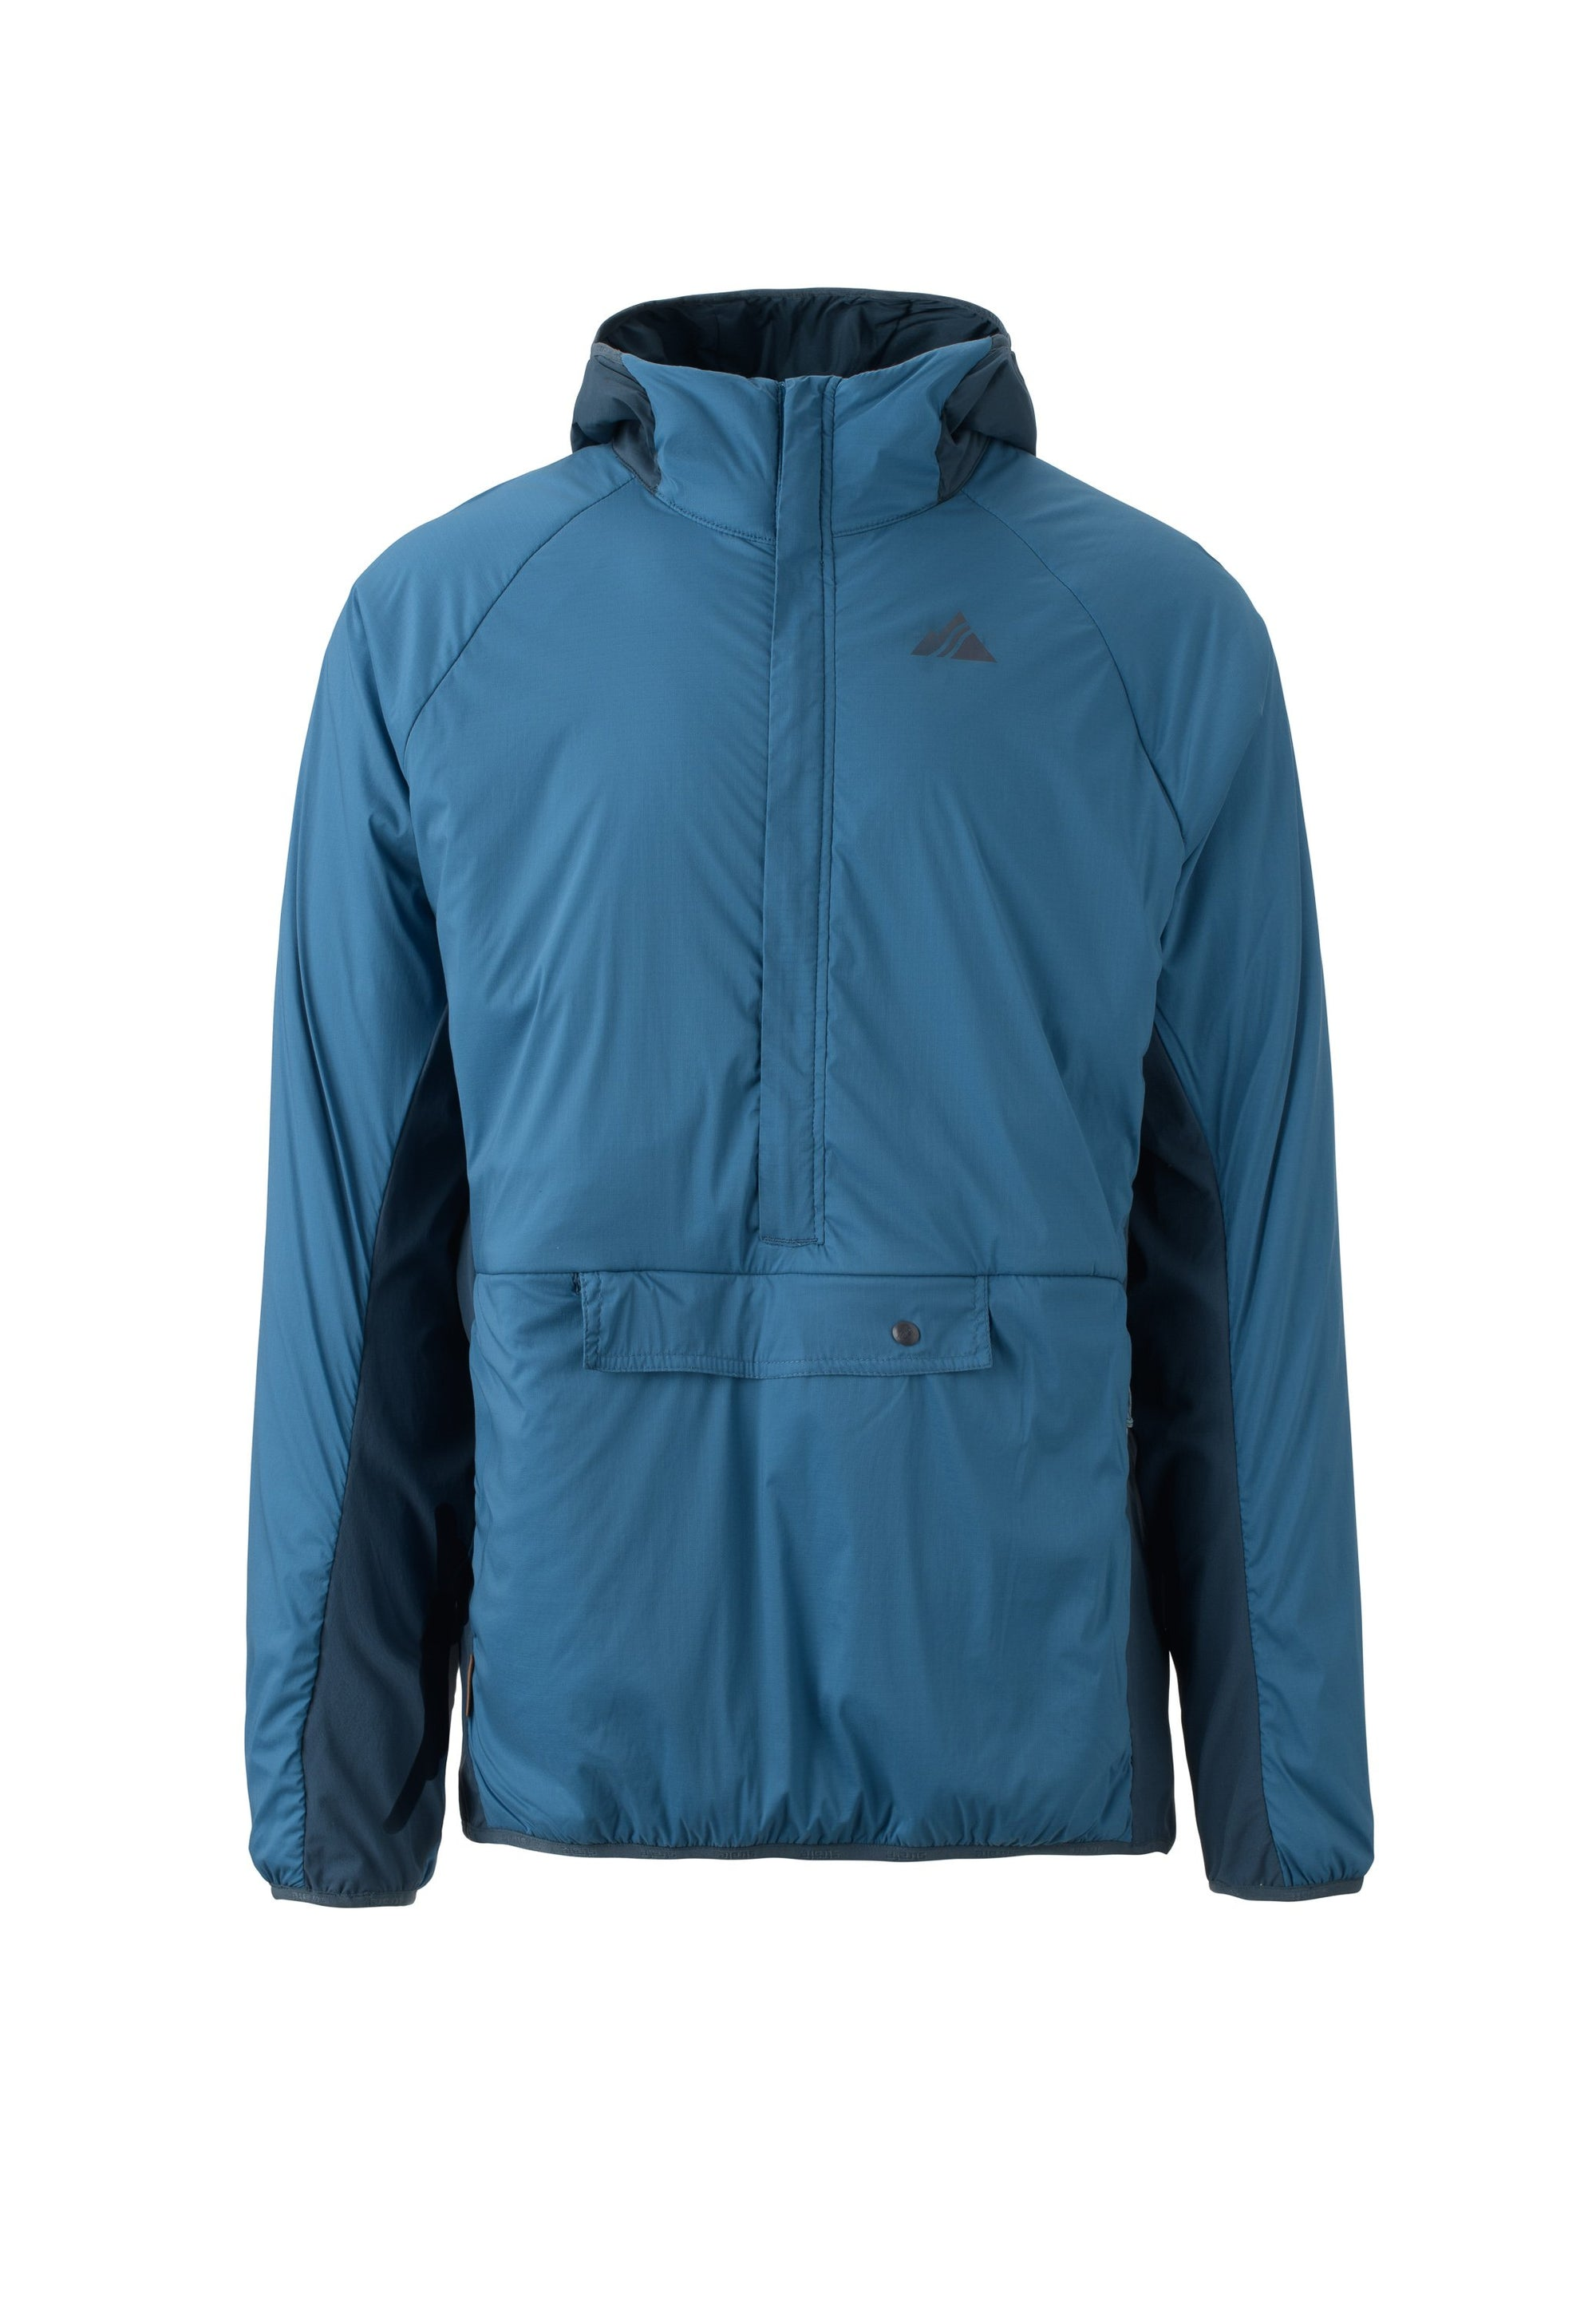 dusk blue 2019 men's deception polartec alpha anorak insulated skiing and snowboarding mid layer from strafe outerwear